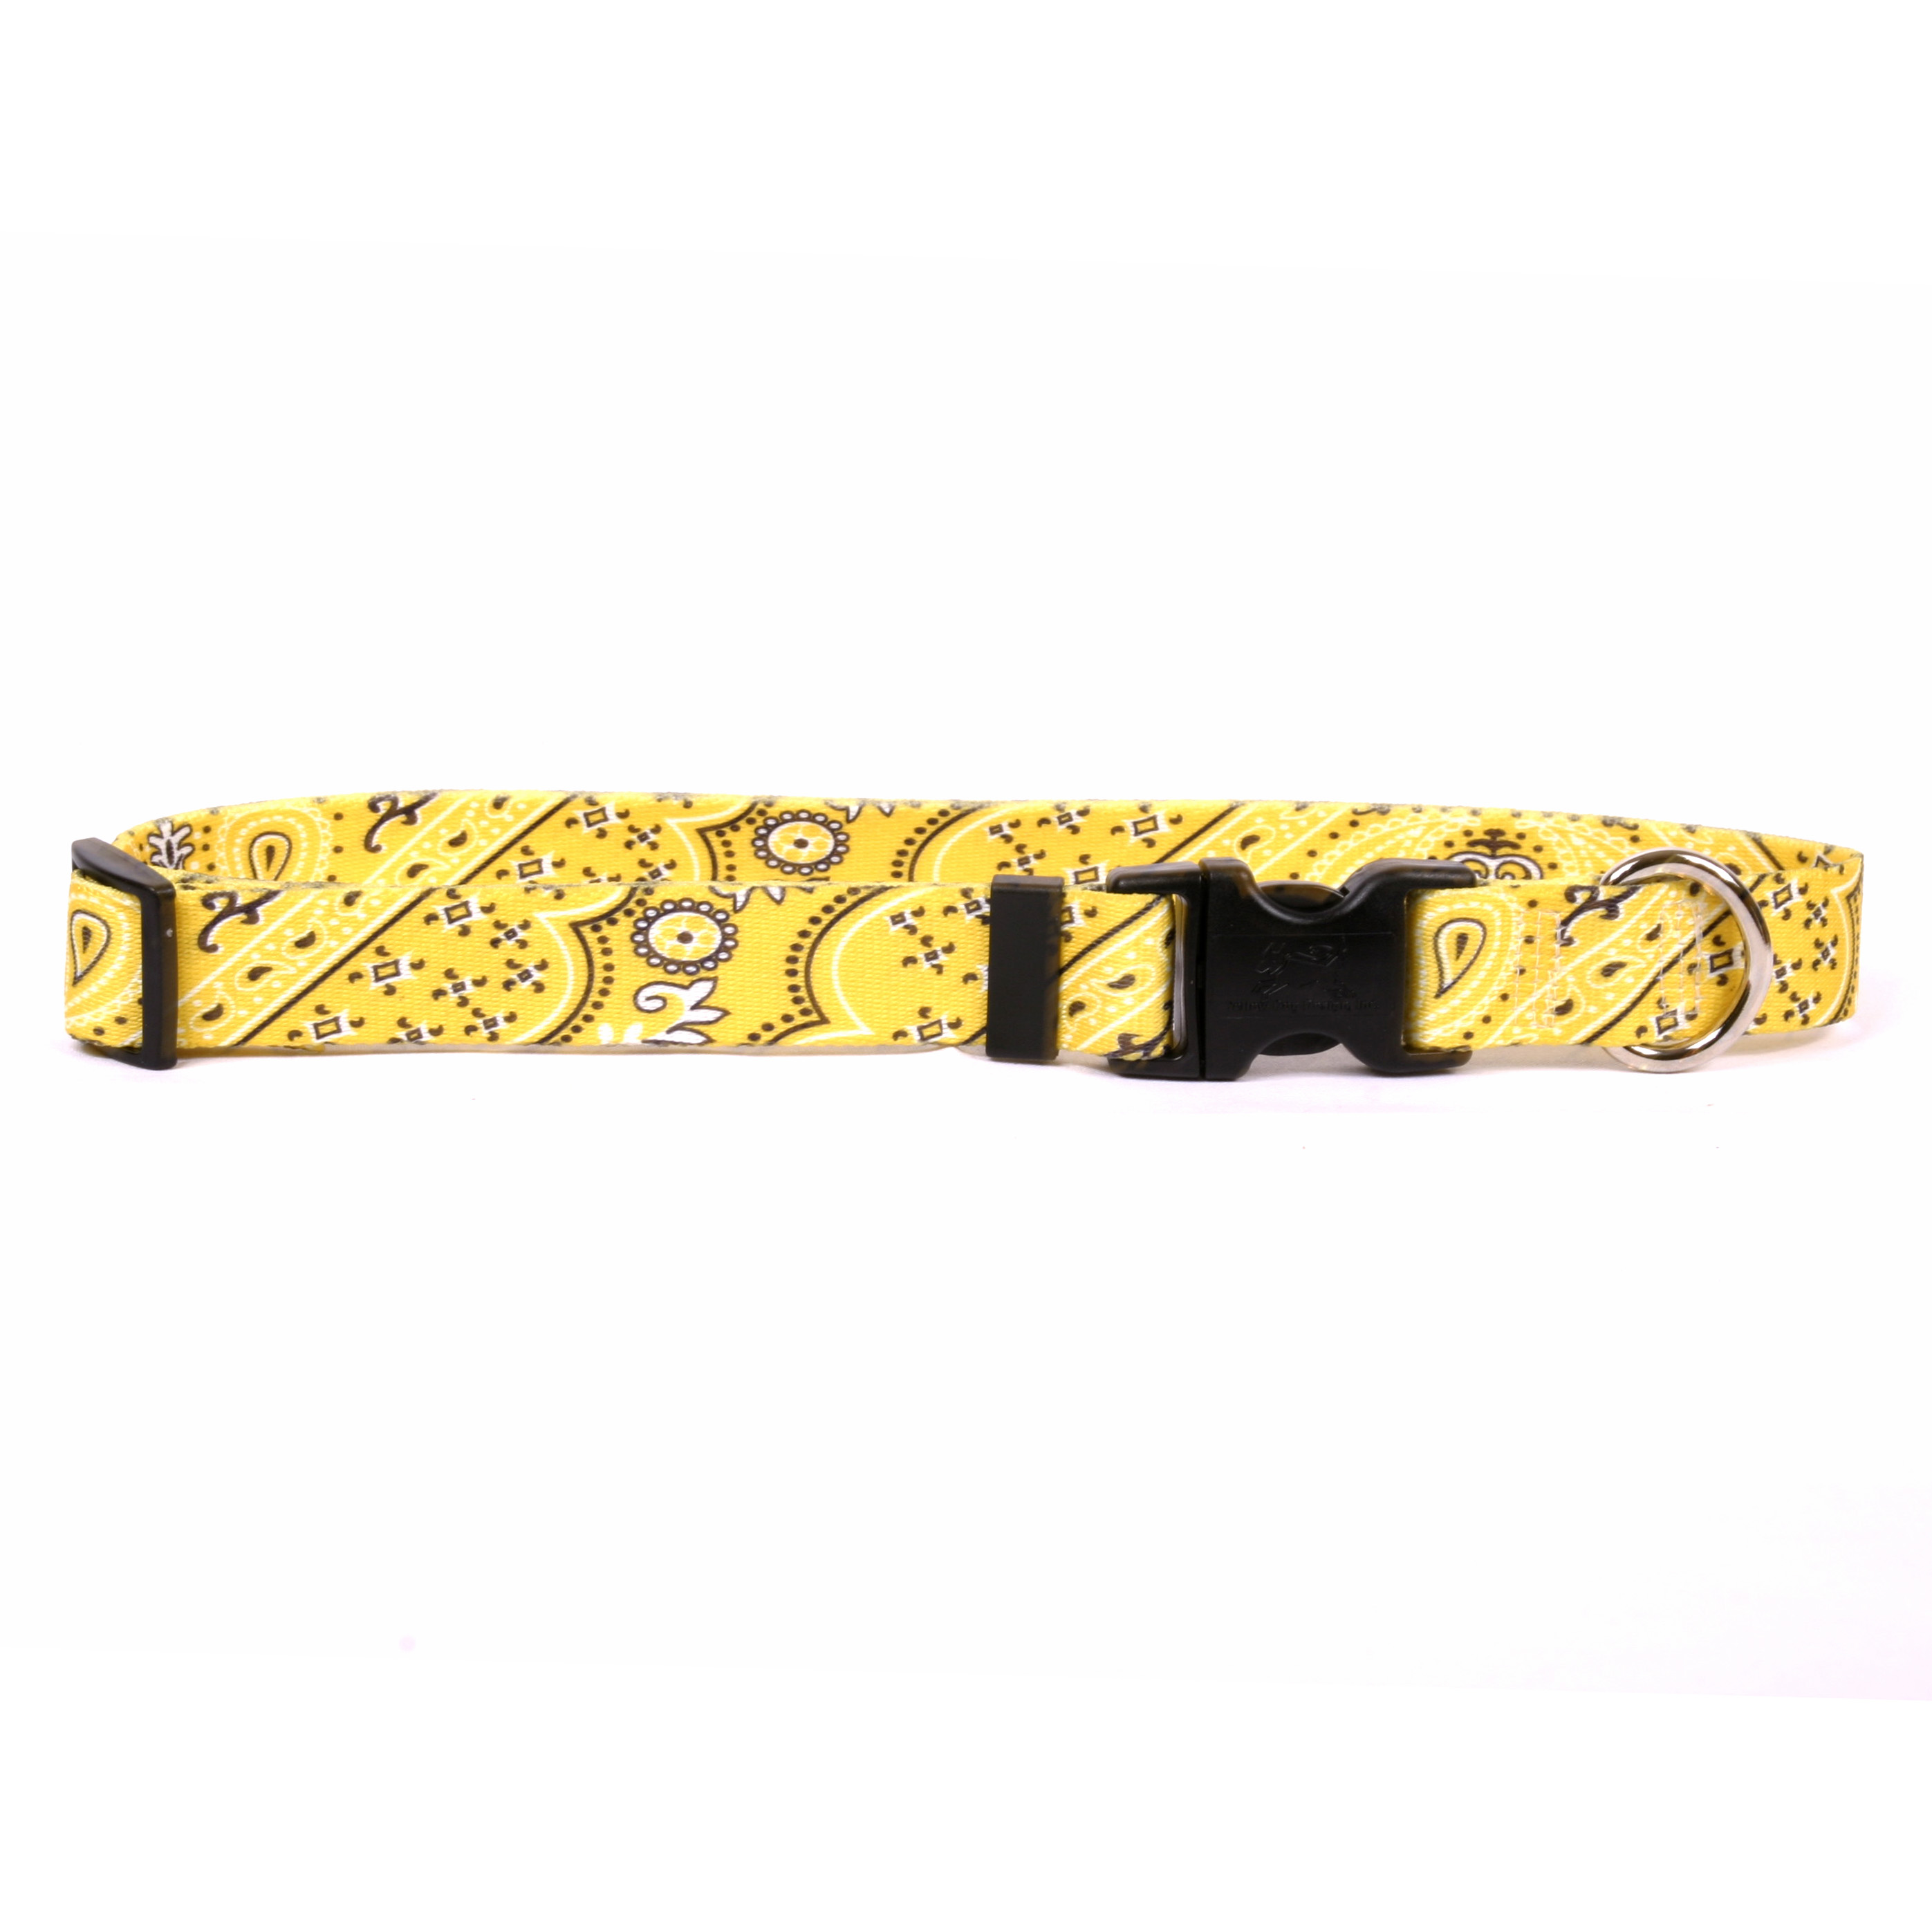 Bandana Yellow Standard Collar